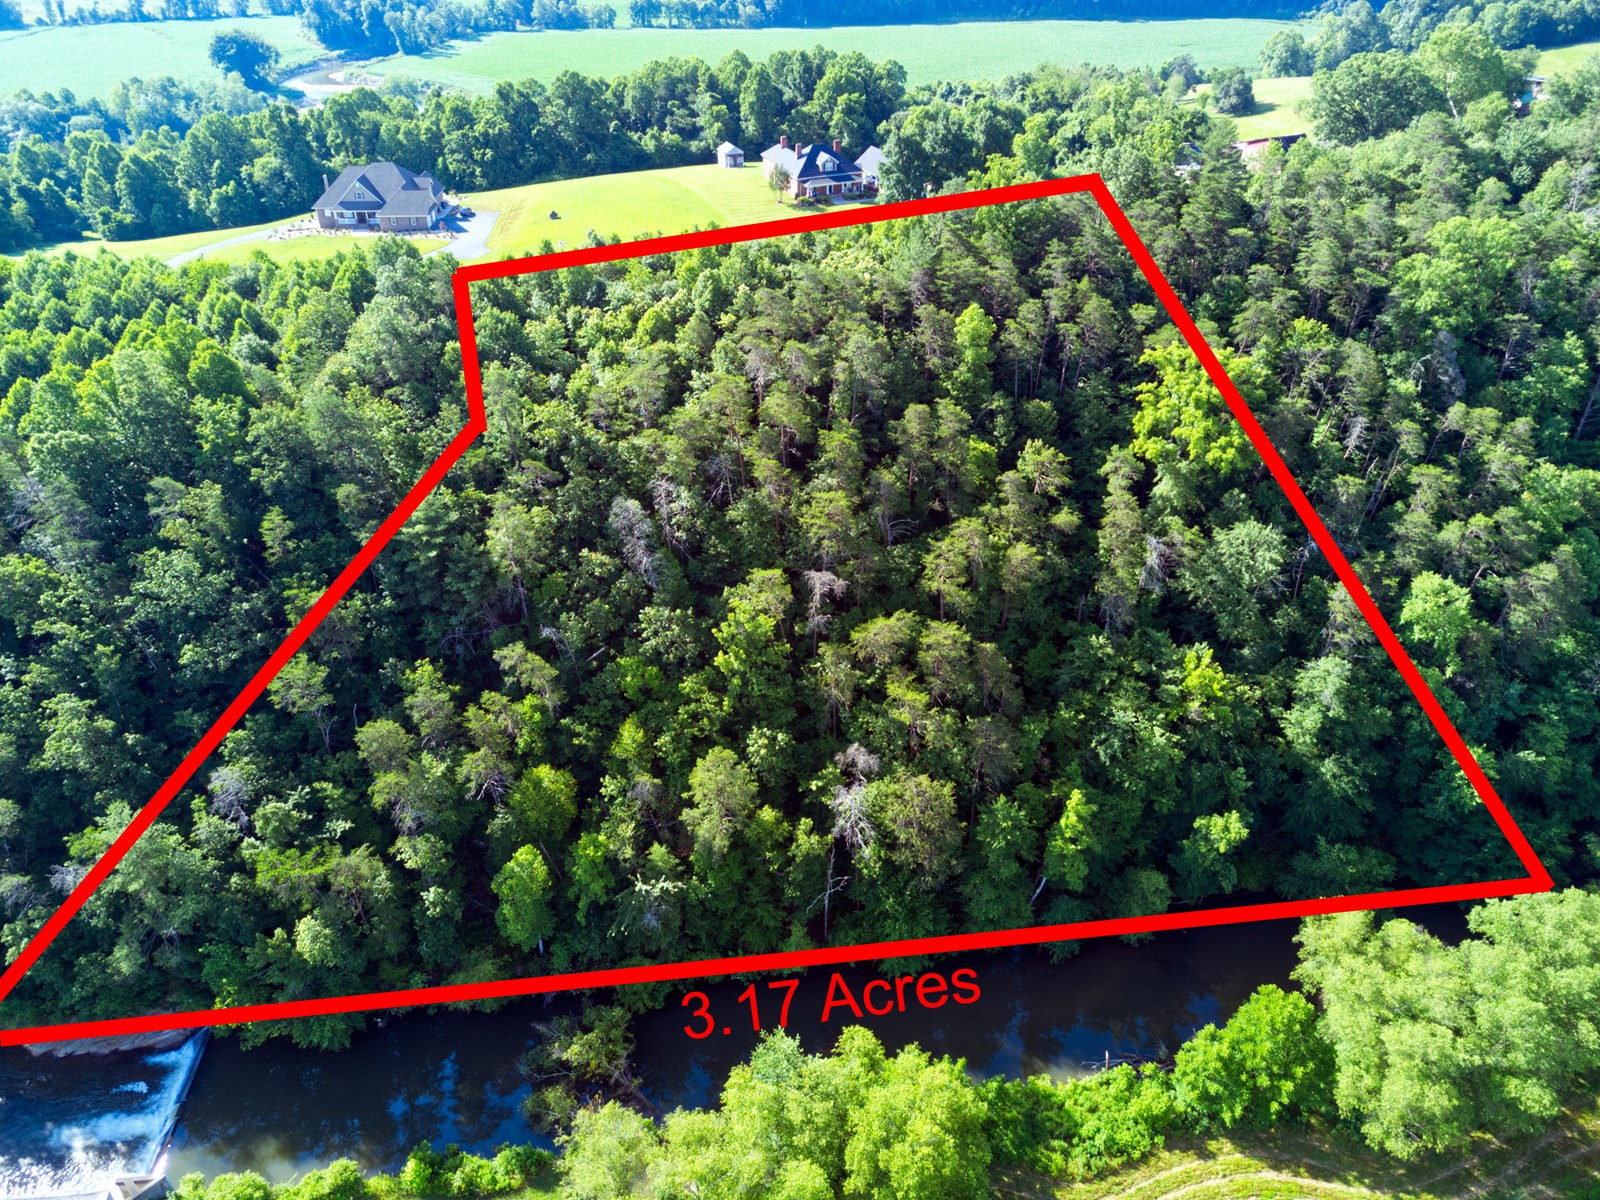 Mount Airy Land For Sale